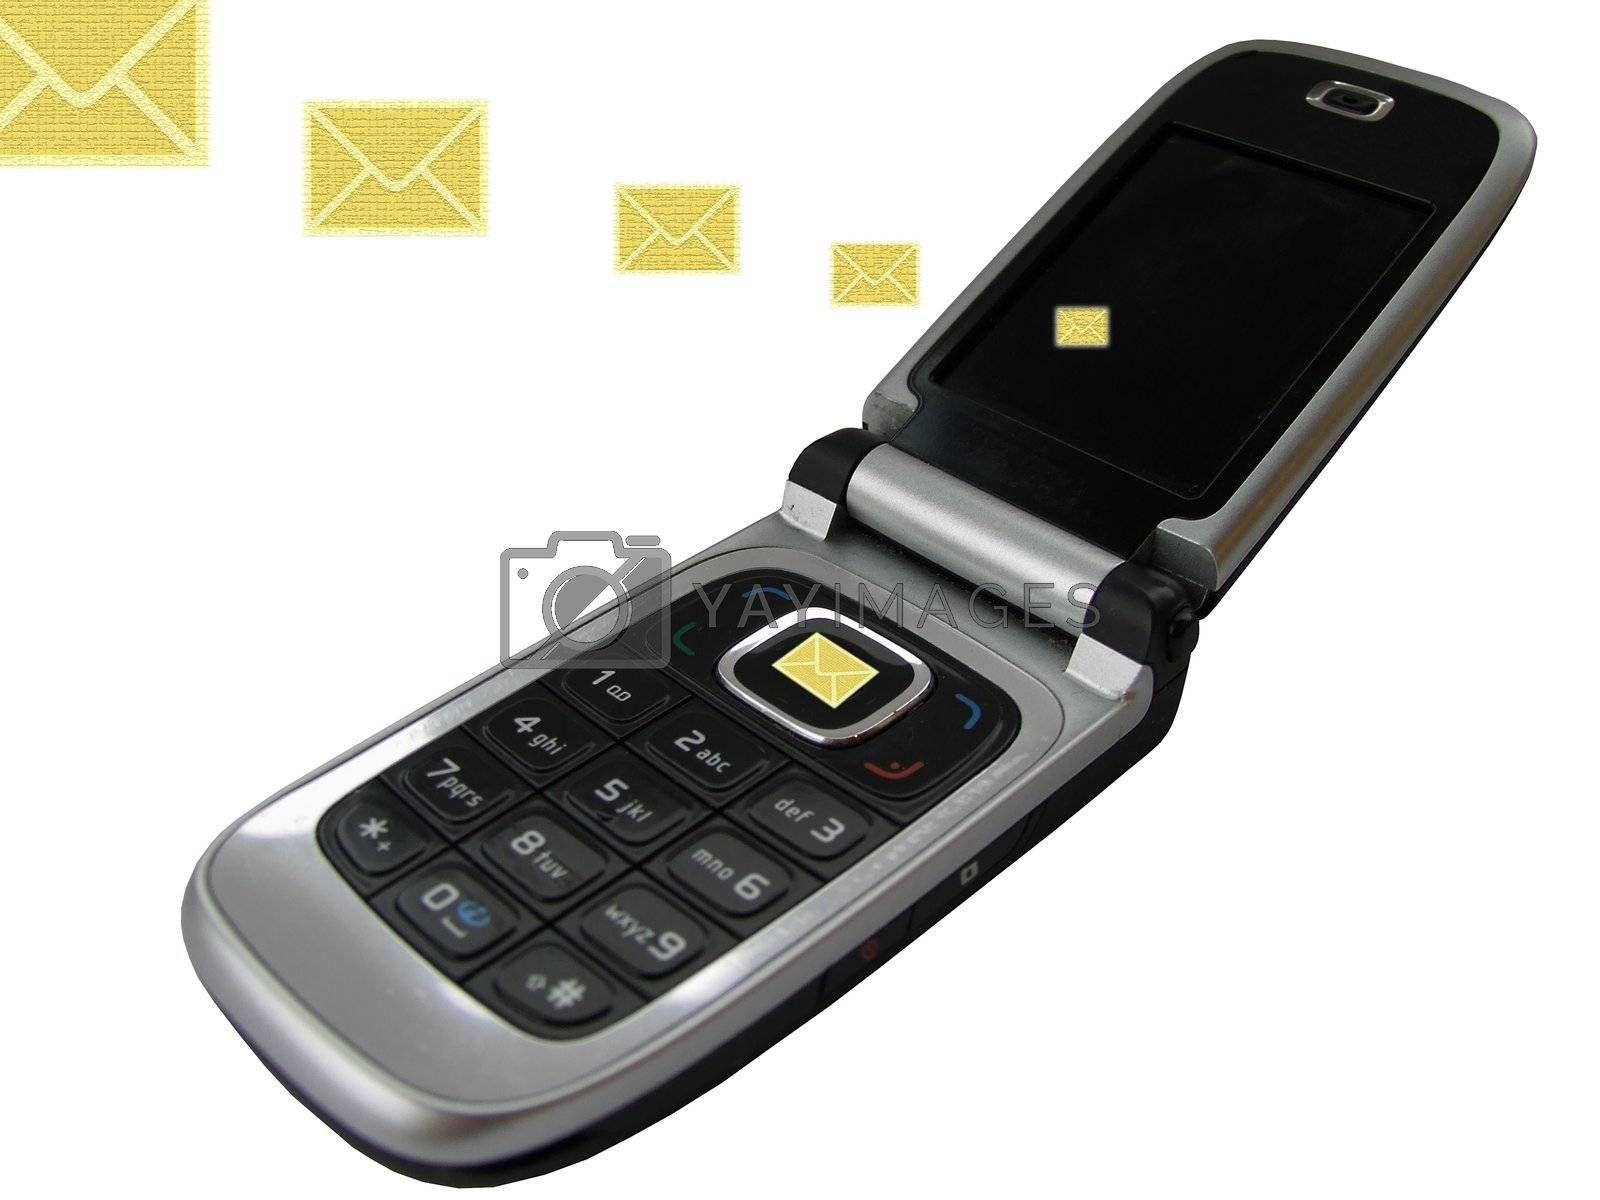 mobilephone sending emails, isolated on white, with clipping path